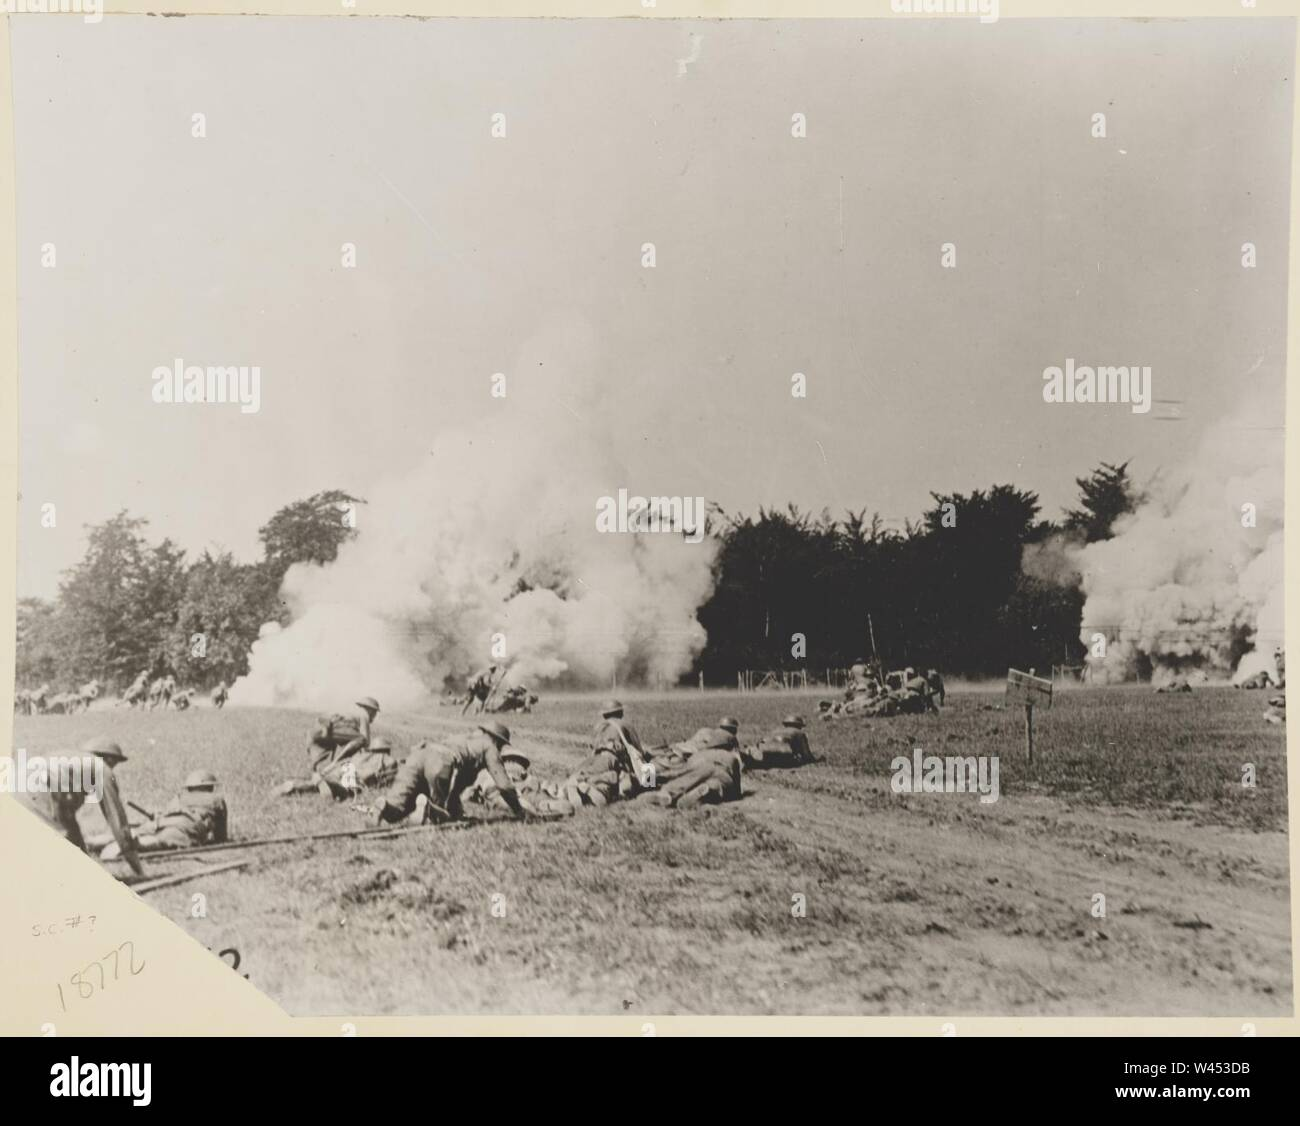 Companies M and K, Three hundred and twenty-sixth Infantry, Eighty-second Division, advancing on enemy positions, throwing hand grenades. Choloy, France - Stock Image